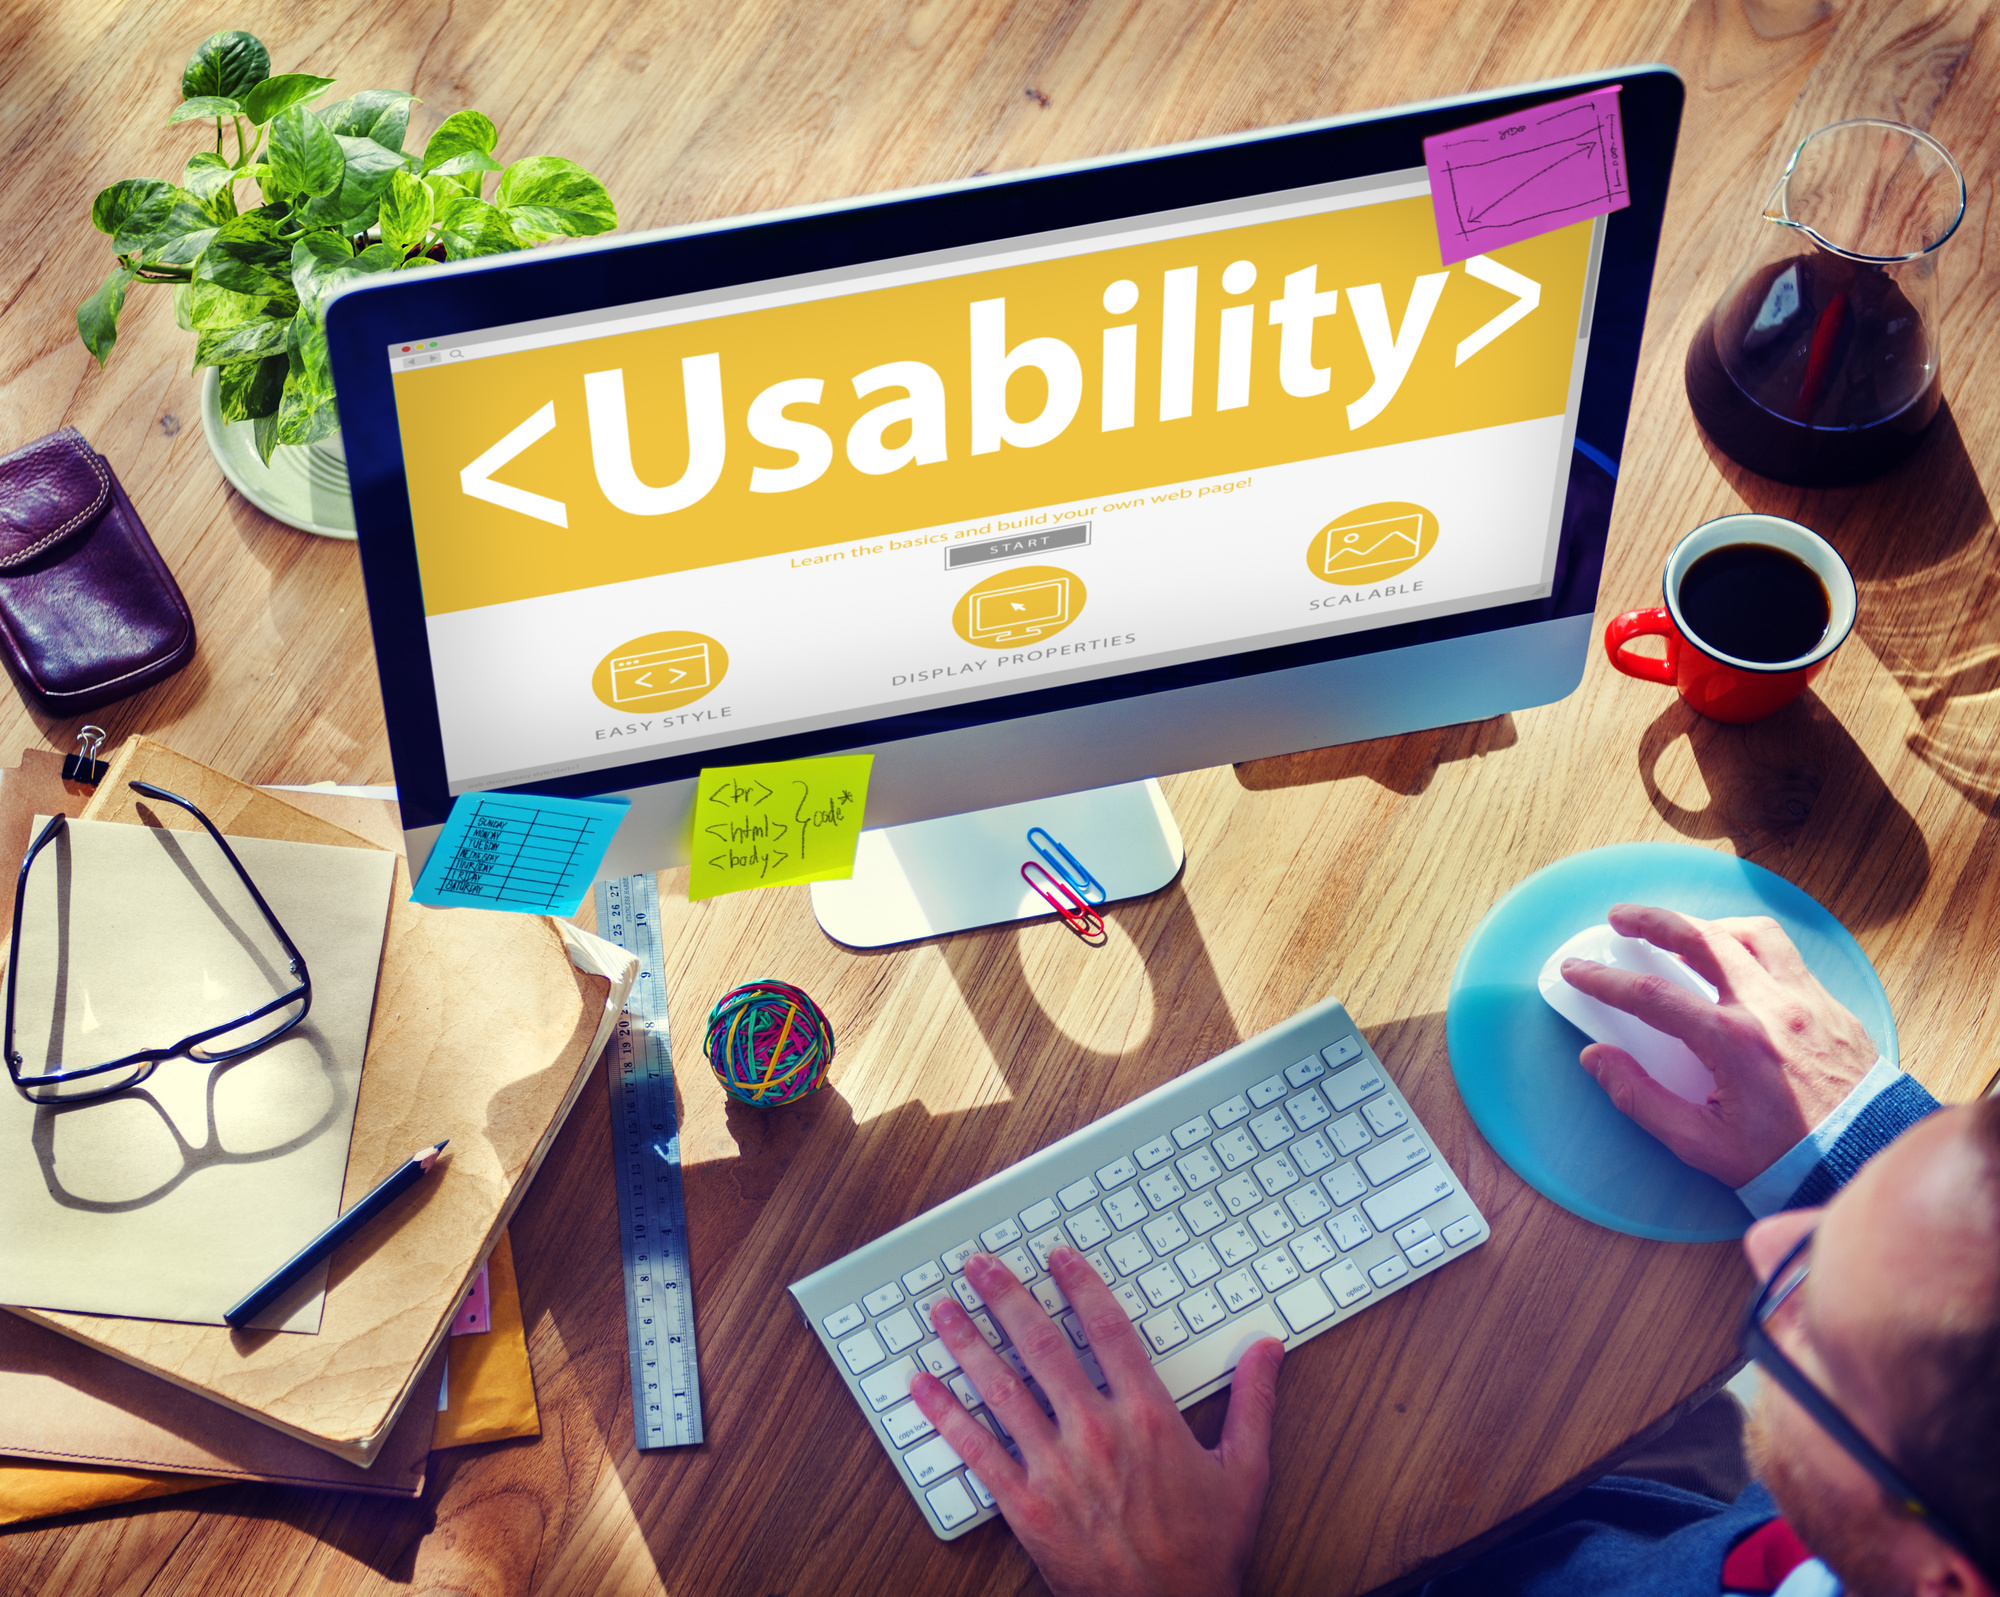 Can You Use Your Website? 6 Common Website Usability Mistakes